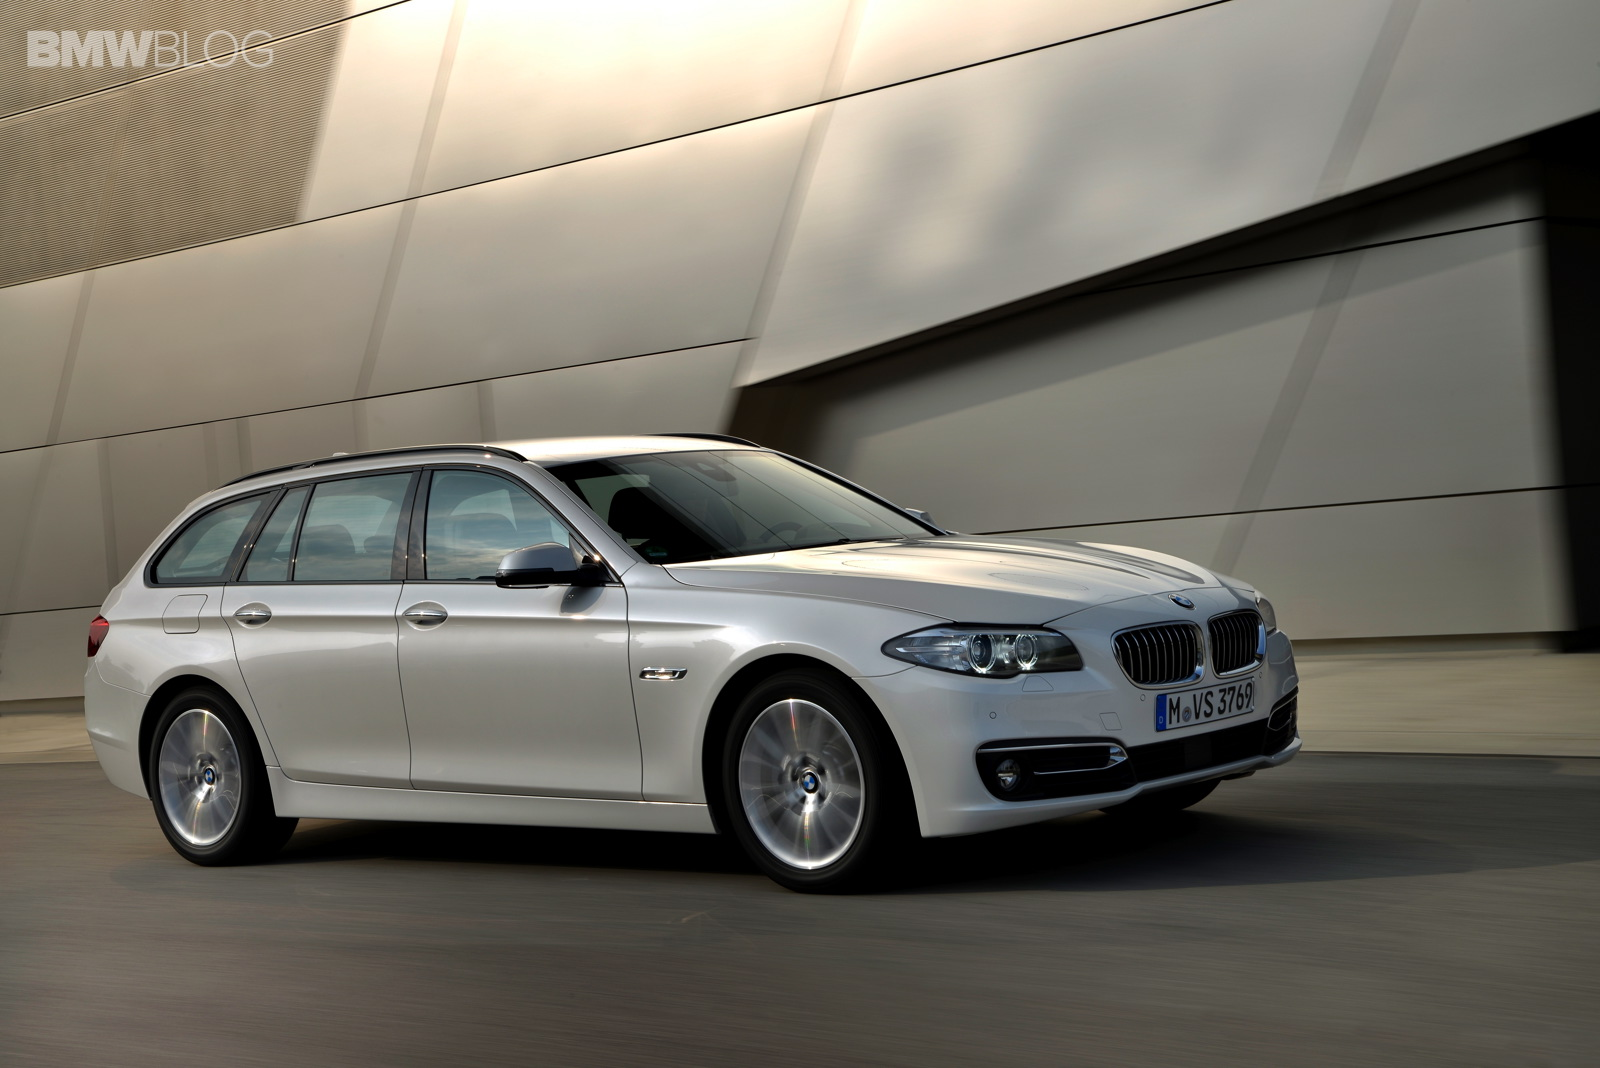 2012 paris motor show bmw 520d touring cashmere silver with liquid black alloy wheels. Black Bedroom Furniture Sets. Home Design Ideas